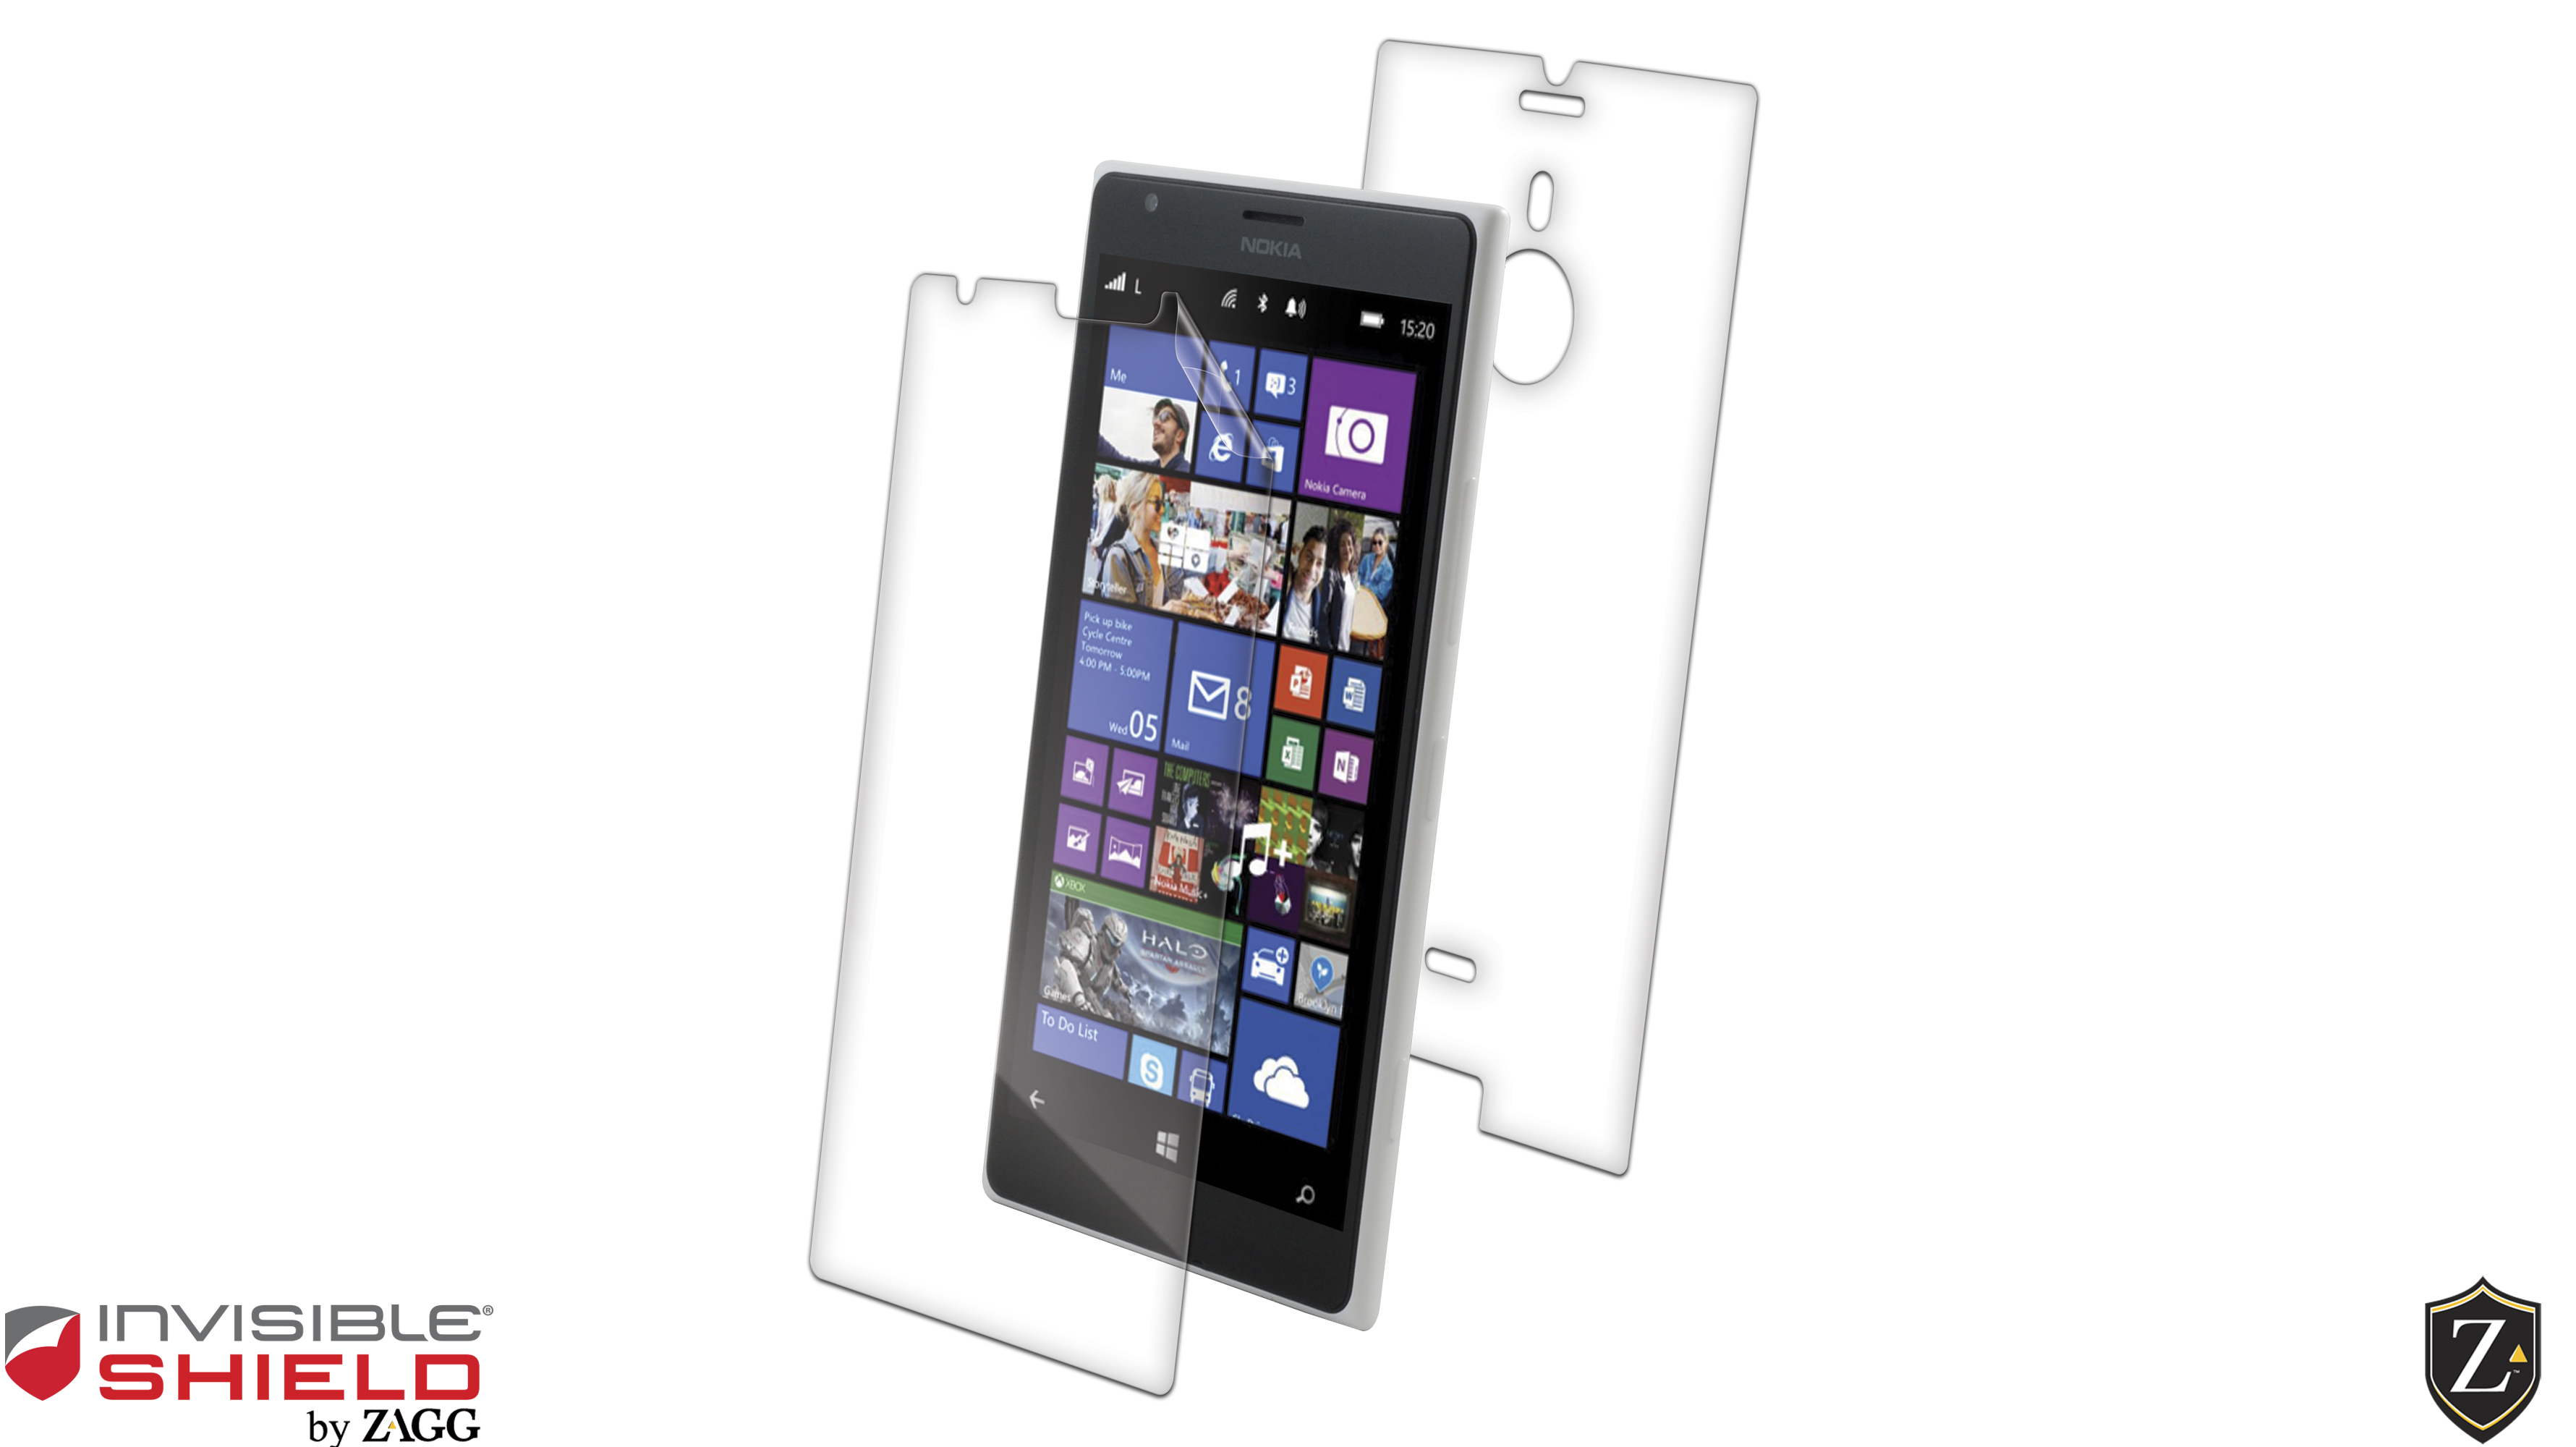 InvisibleShield Original for the Nokia Lumia 1520